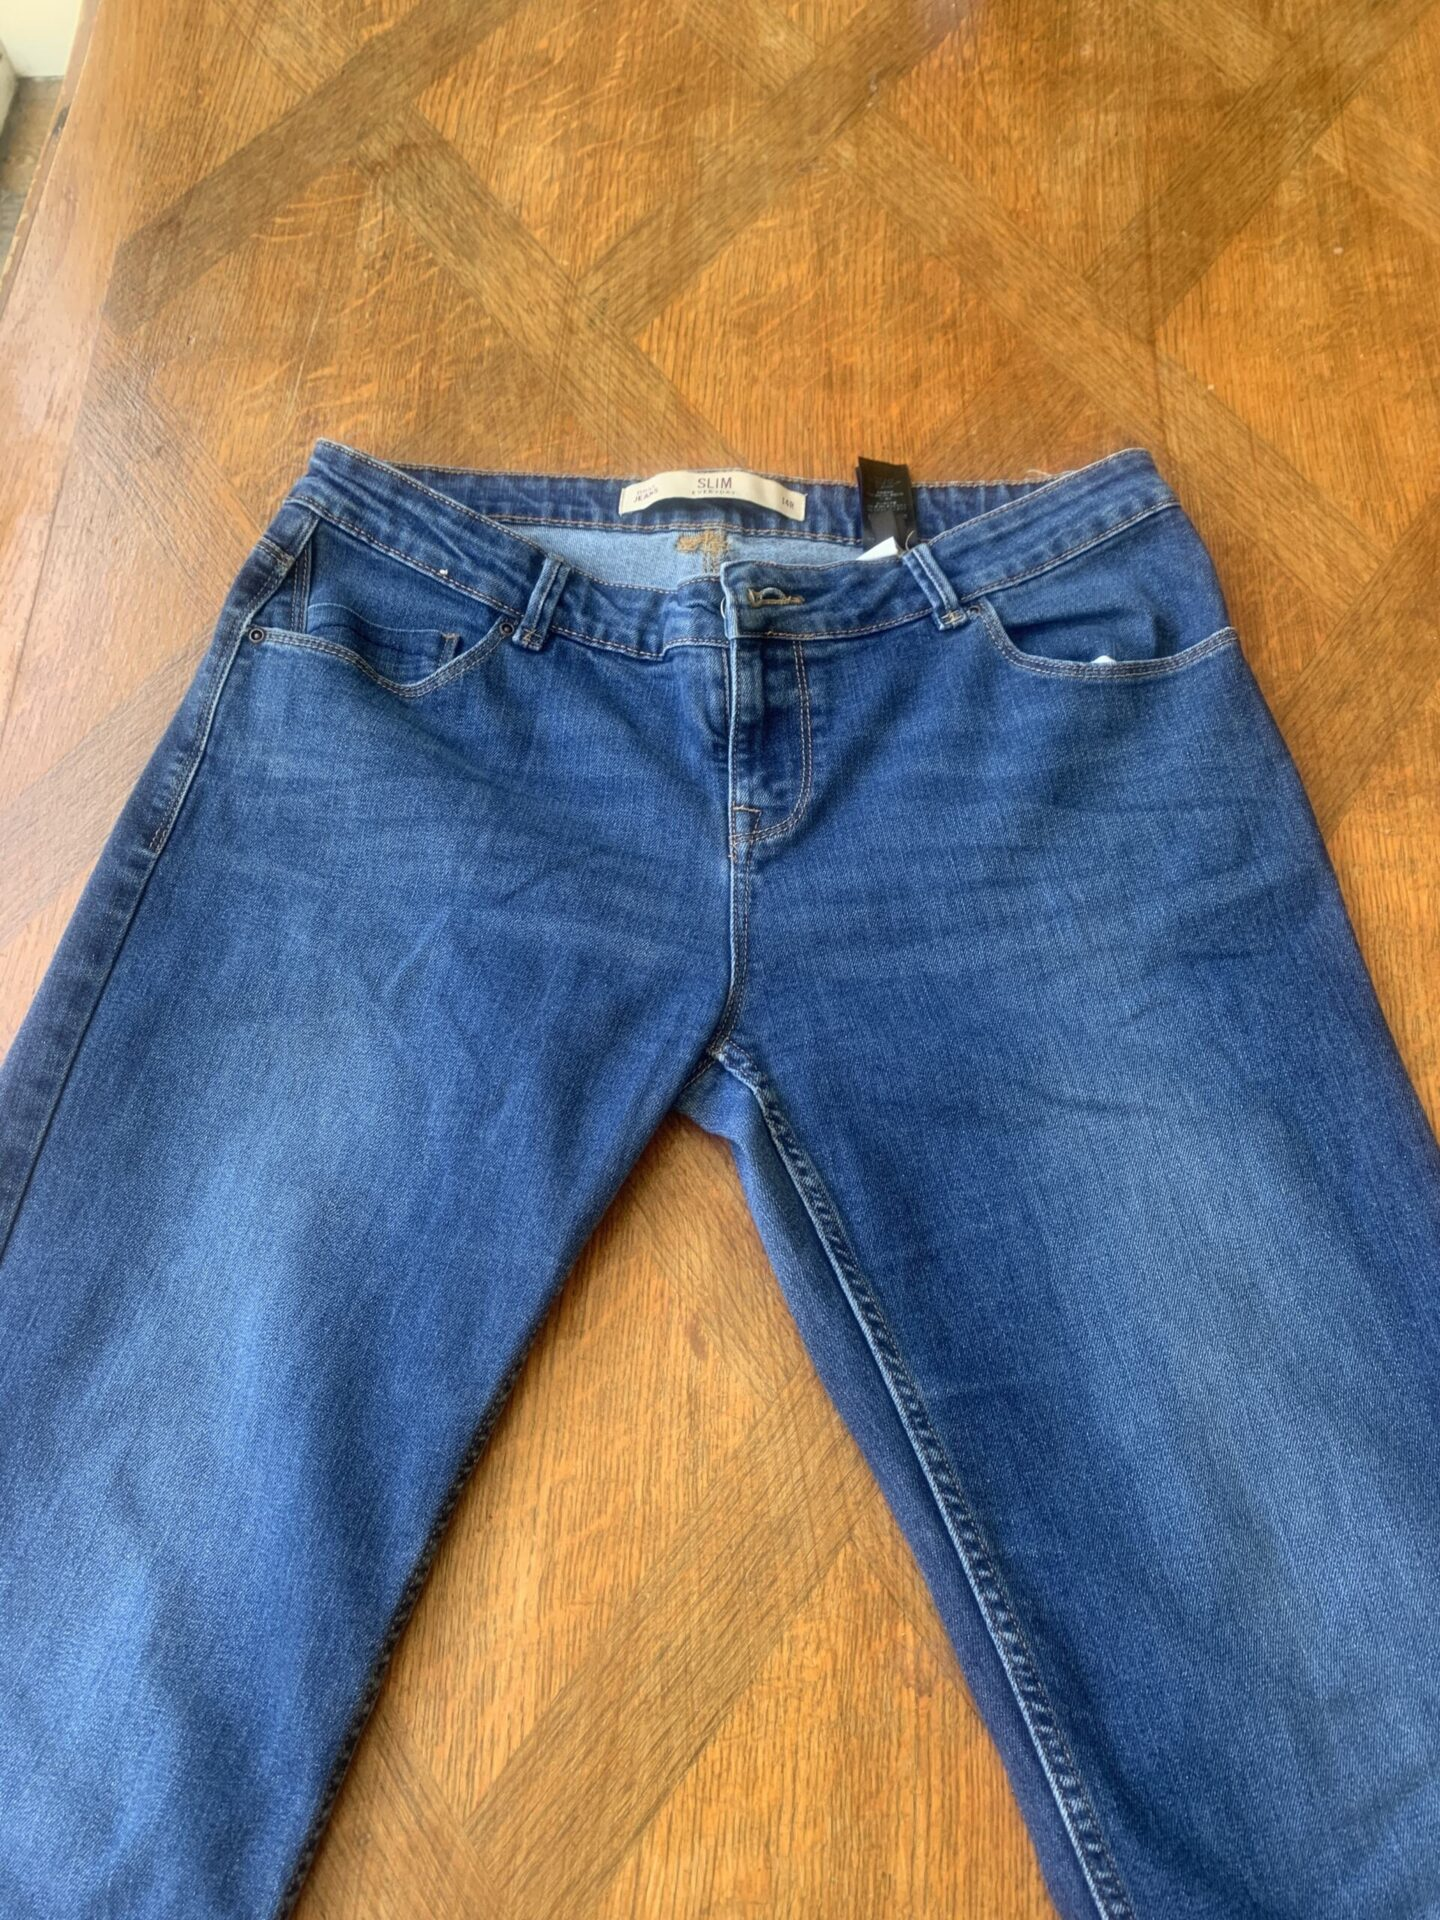 pair_of_jeans